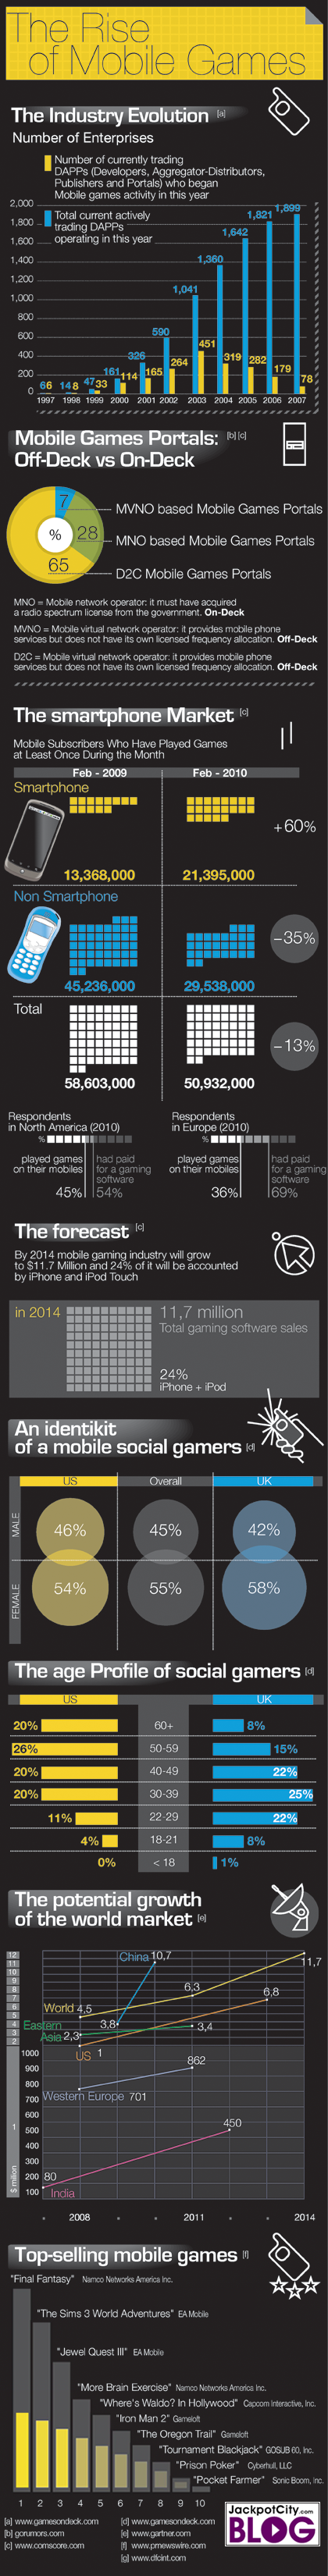 The Rise of Mobile Gaming infographic